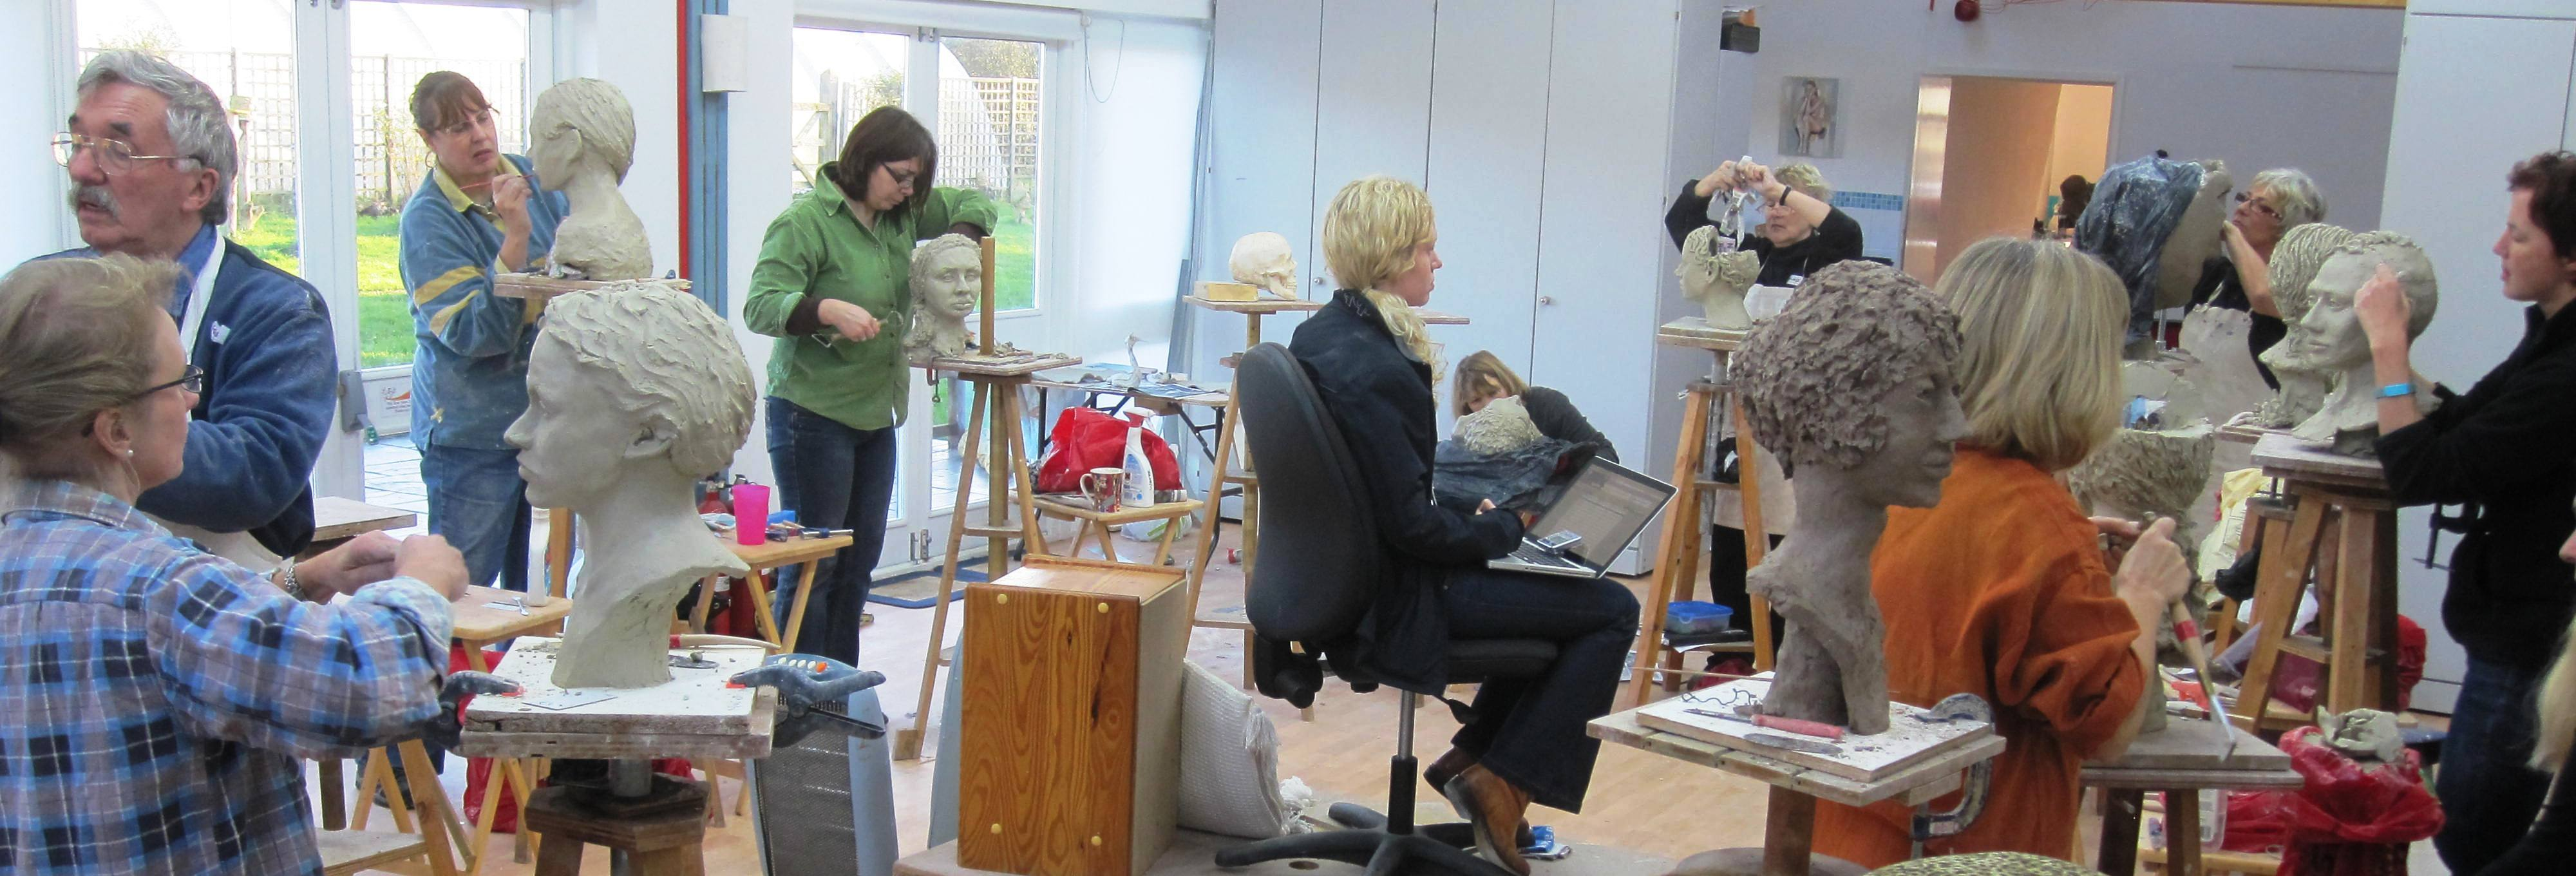 Clay Portrait Weekends with Karin Ort - 7/8 May 2016